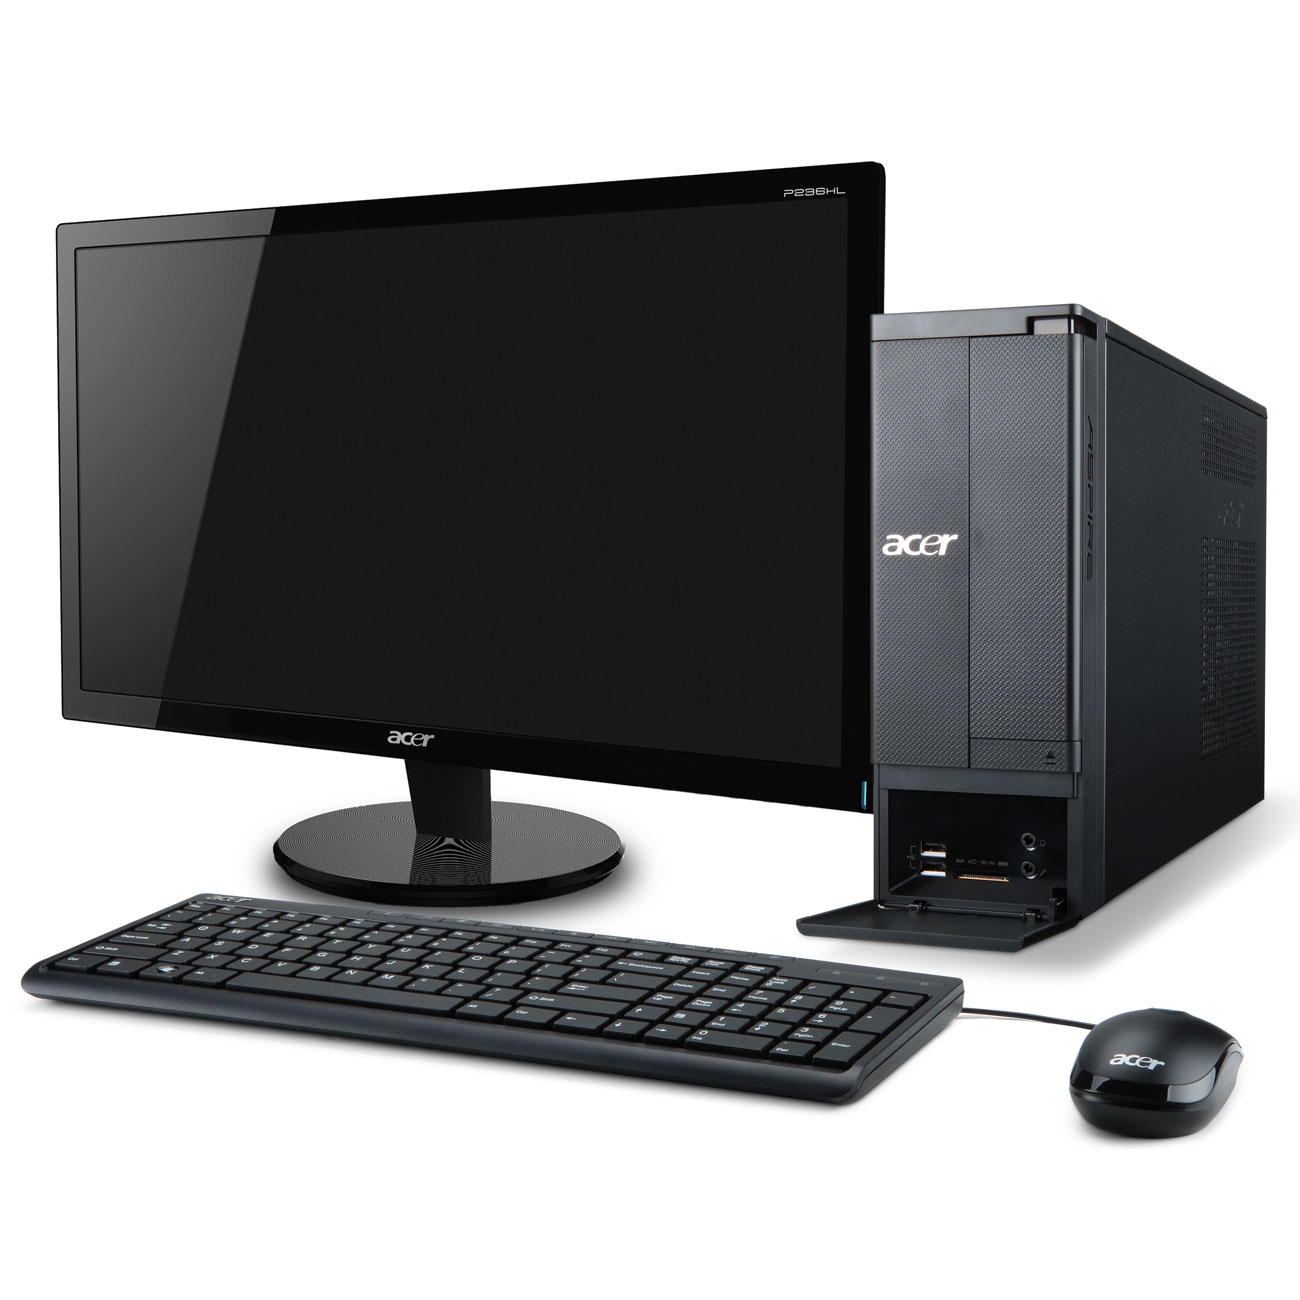 Acer aspire x1430 007 ob 20 pc de bureau acer sur - Ordinateur de bureau windows 7 pro ...